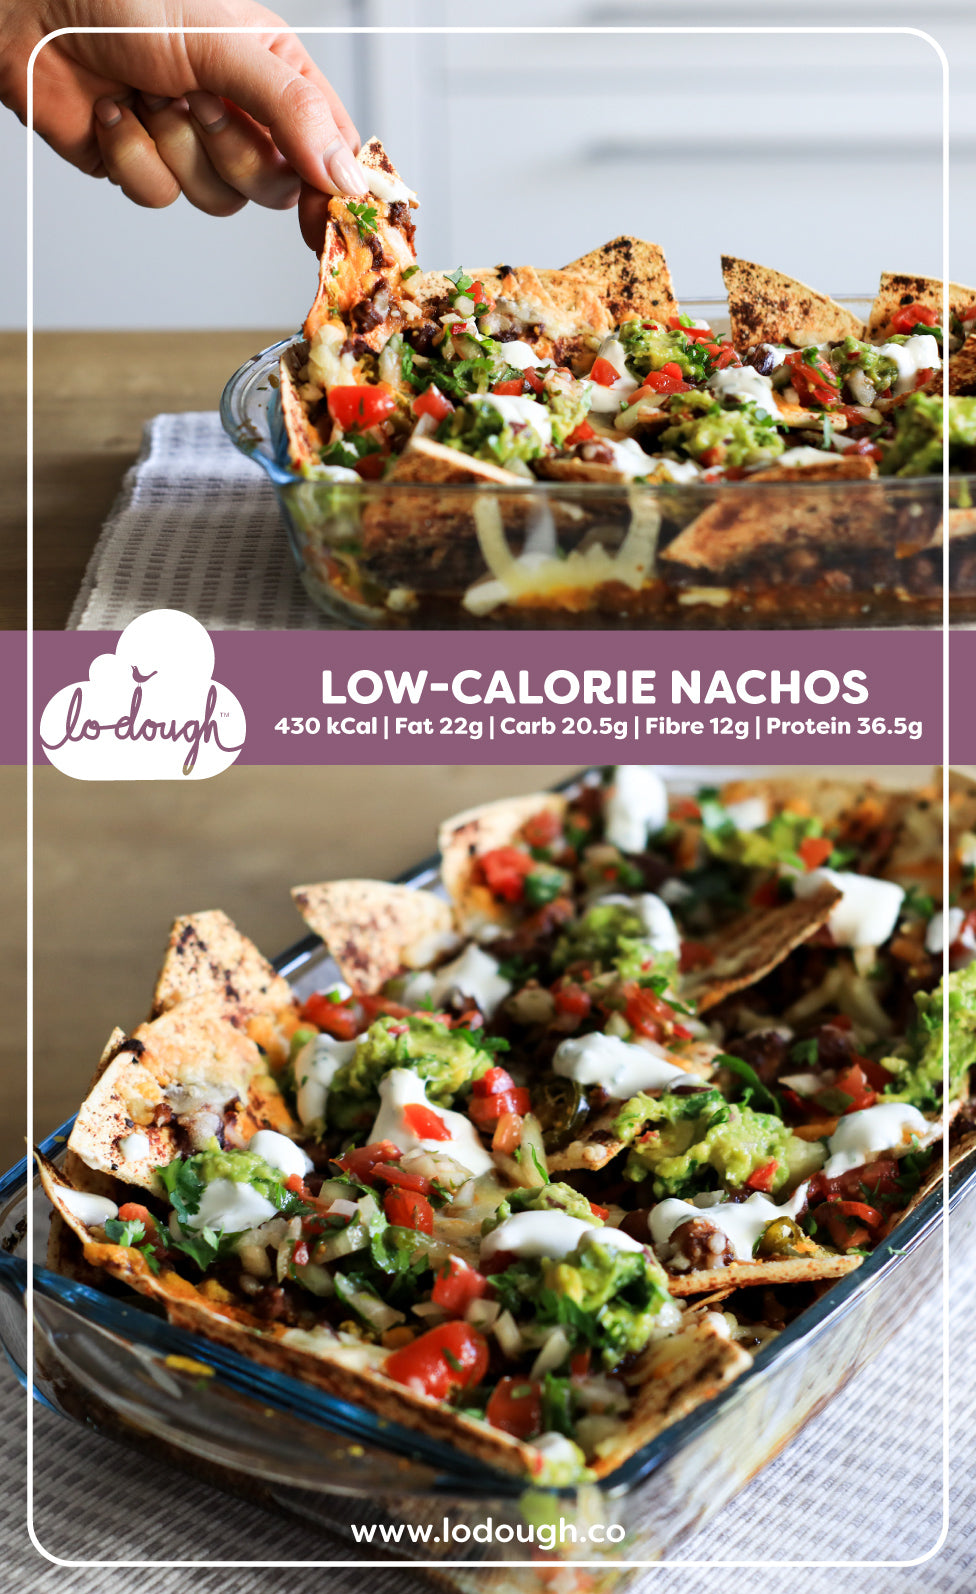 Low-Calorie Nachos